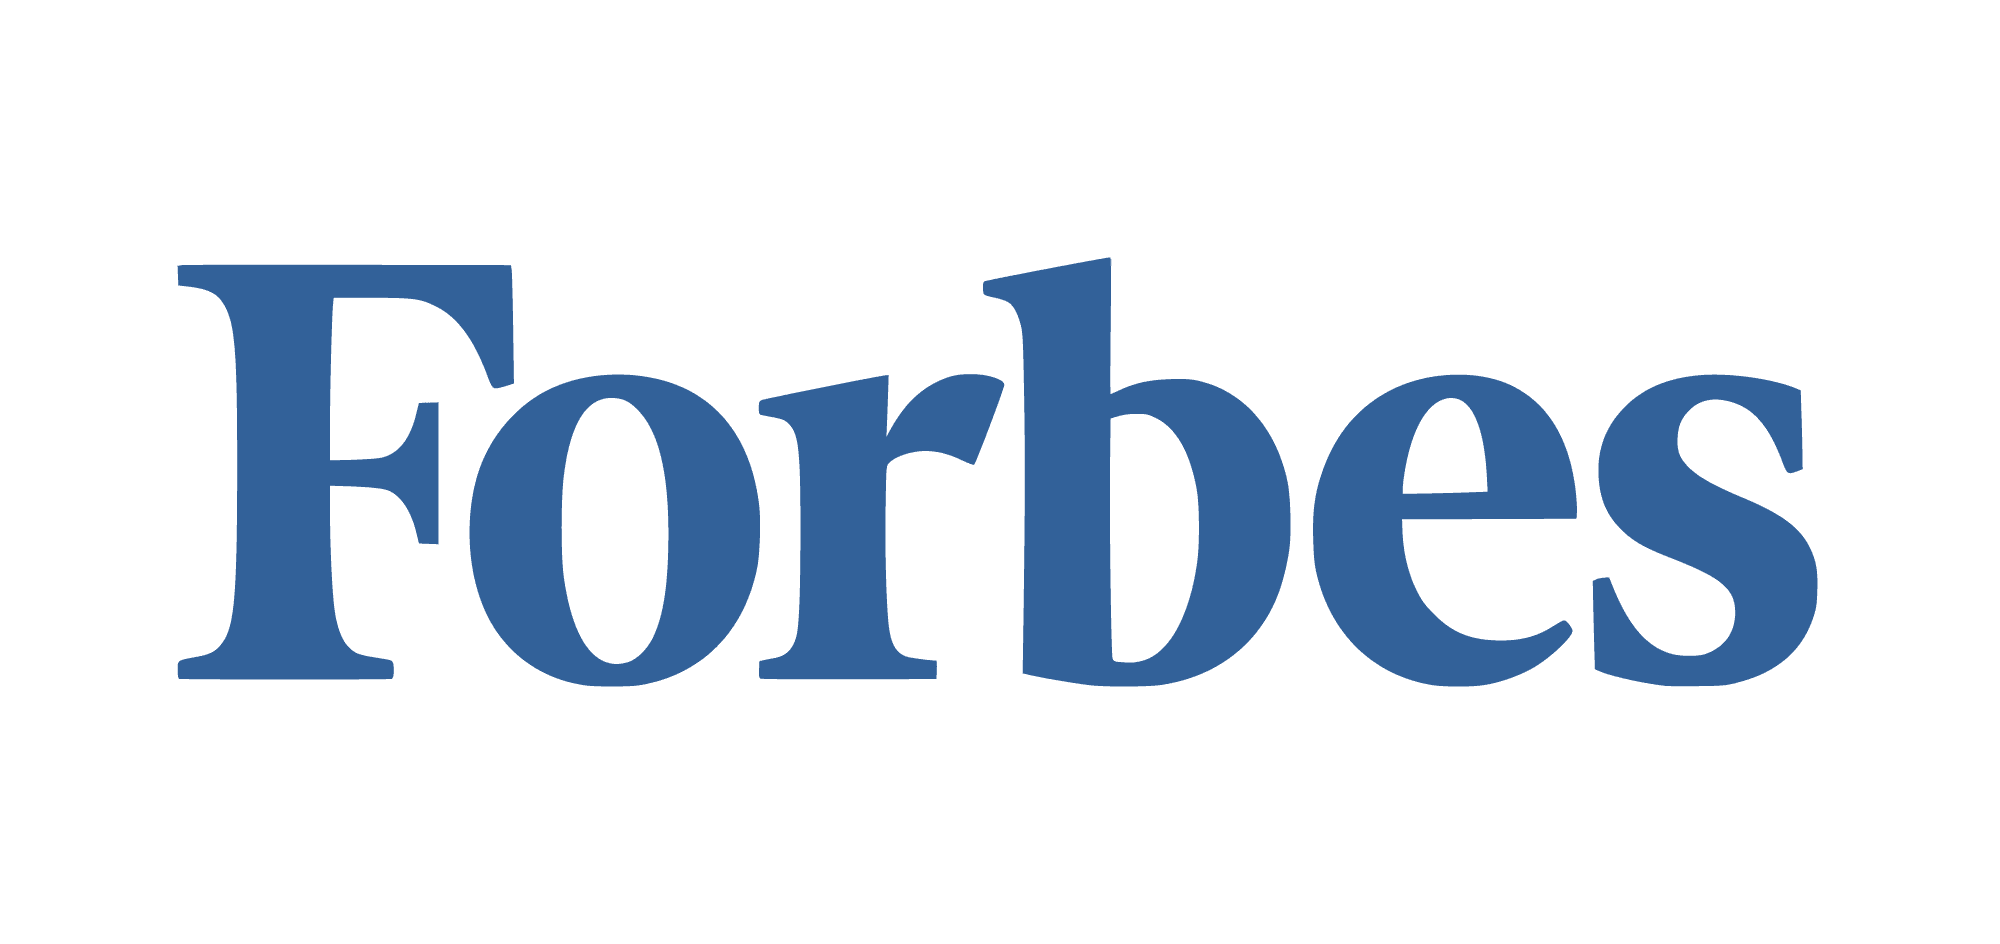 Forbes Logo Transparent